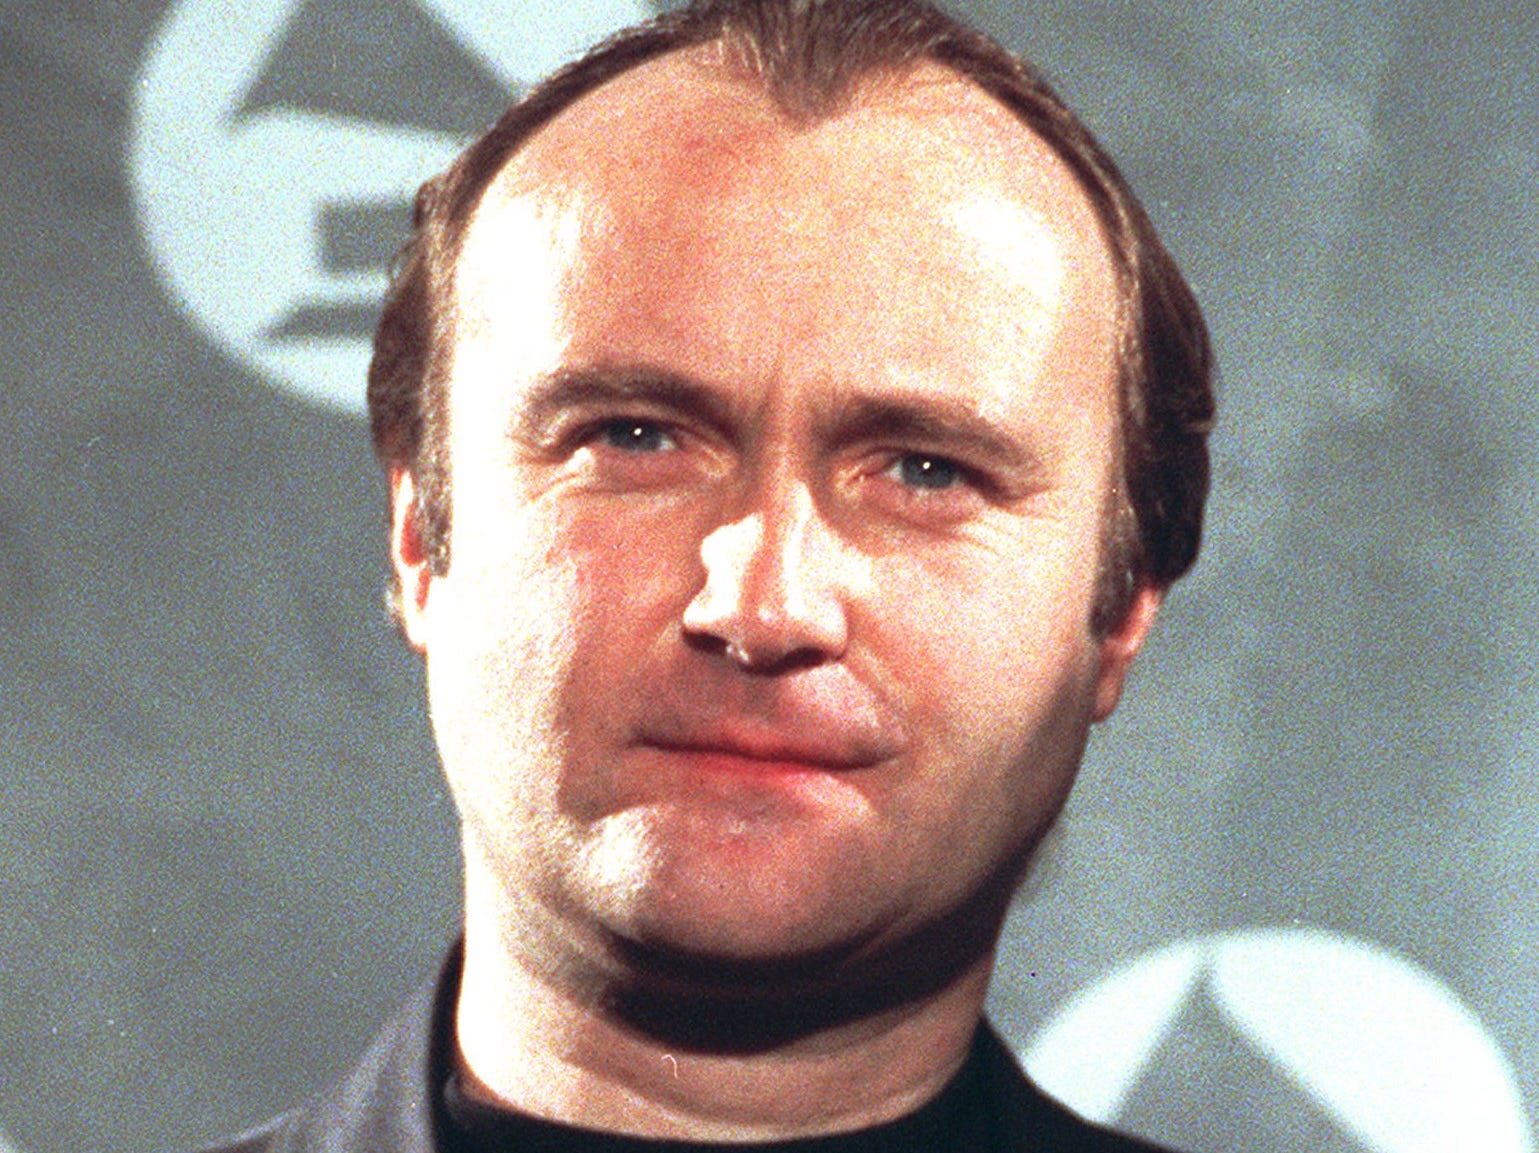 Phil Collins holds his Grammy award in a 1991 file photo.